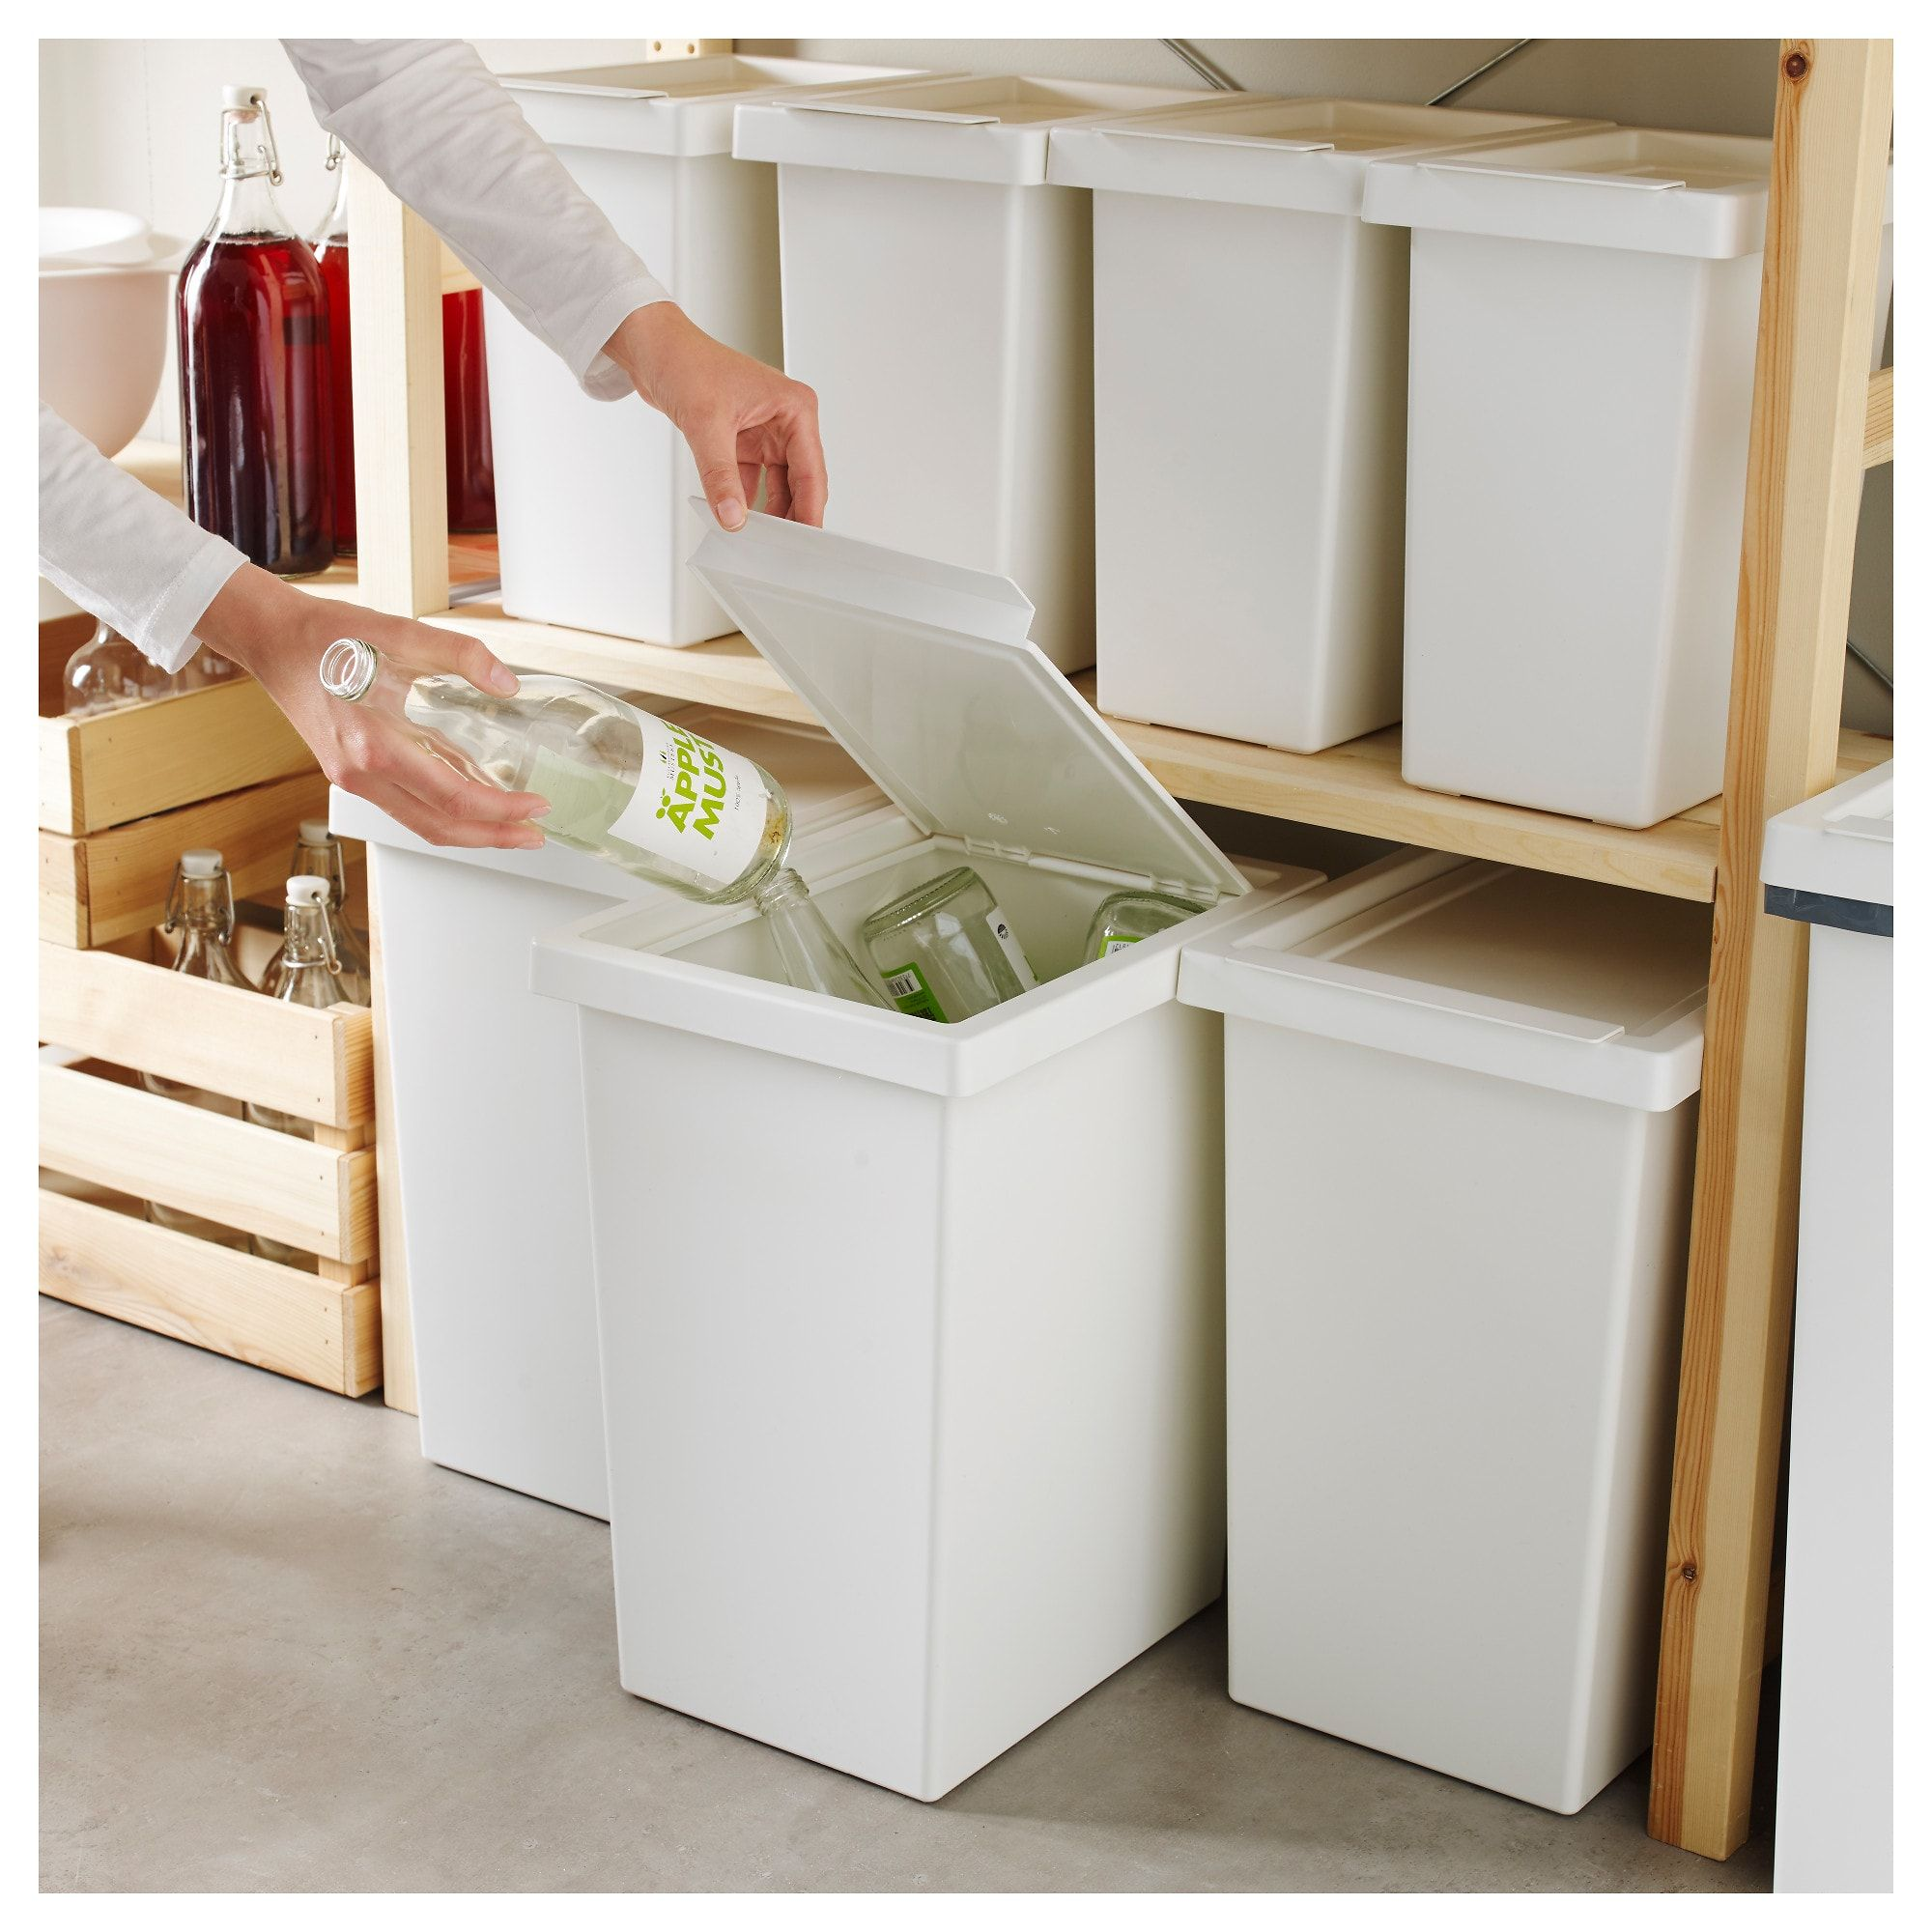 Ikea Tonne Filur Bin With Lid White In 2019 Studio Design Pantry Laundry